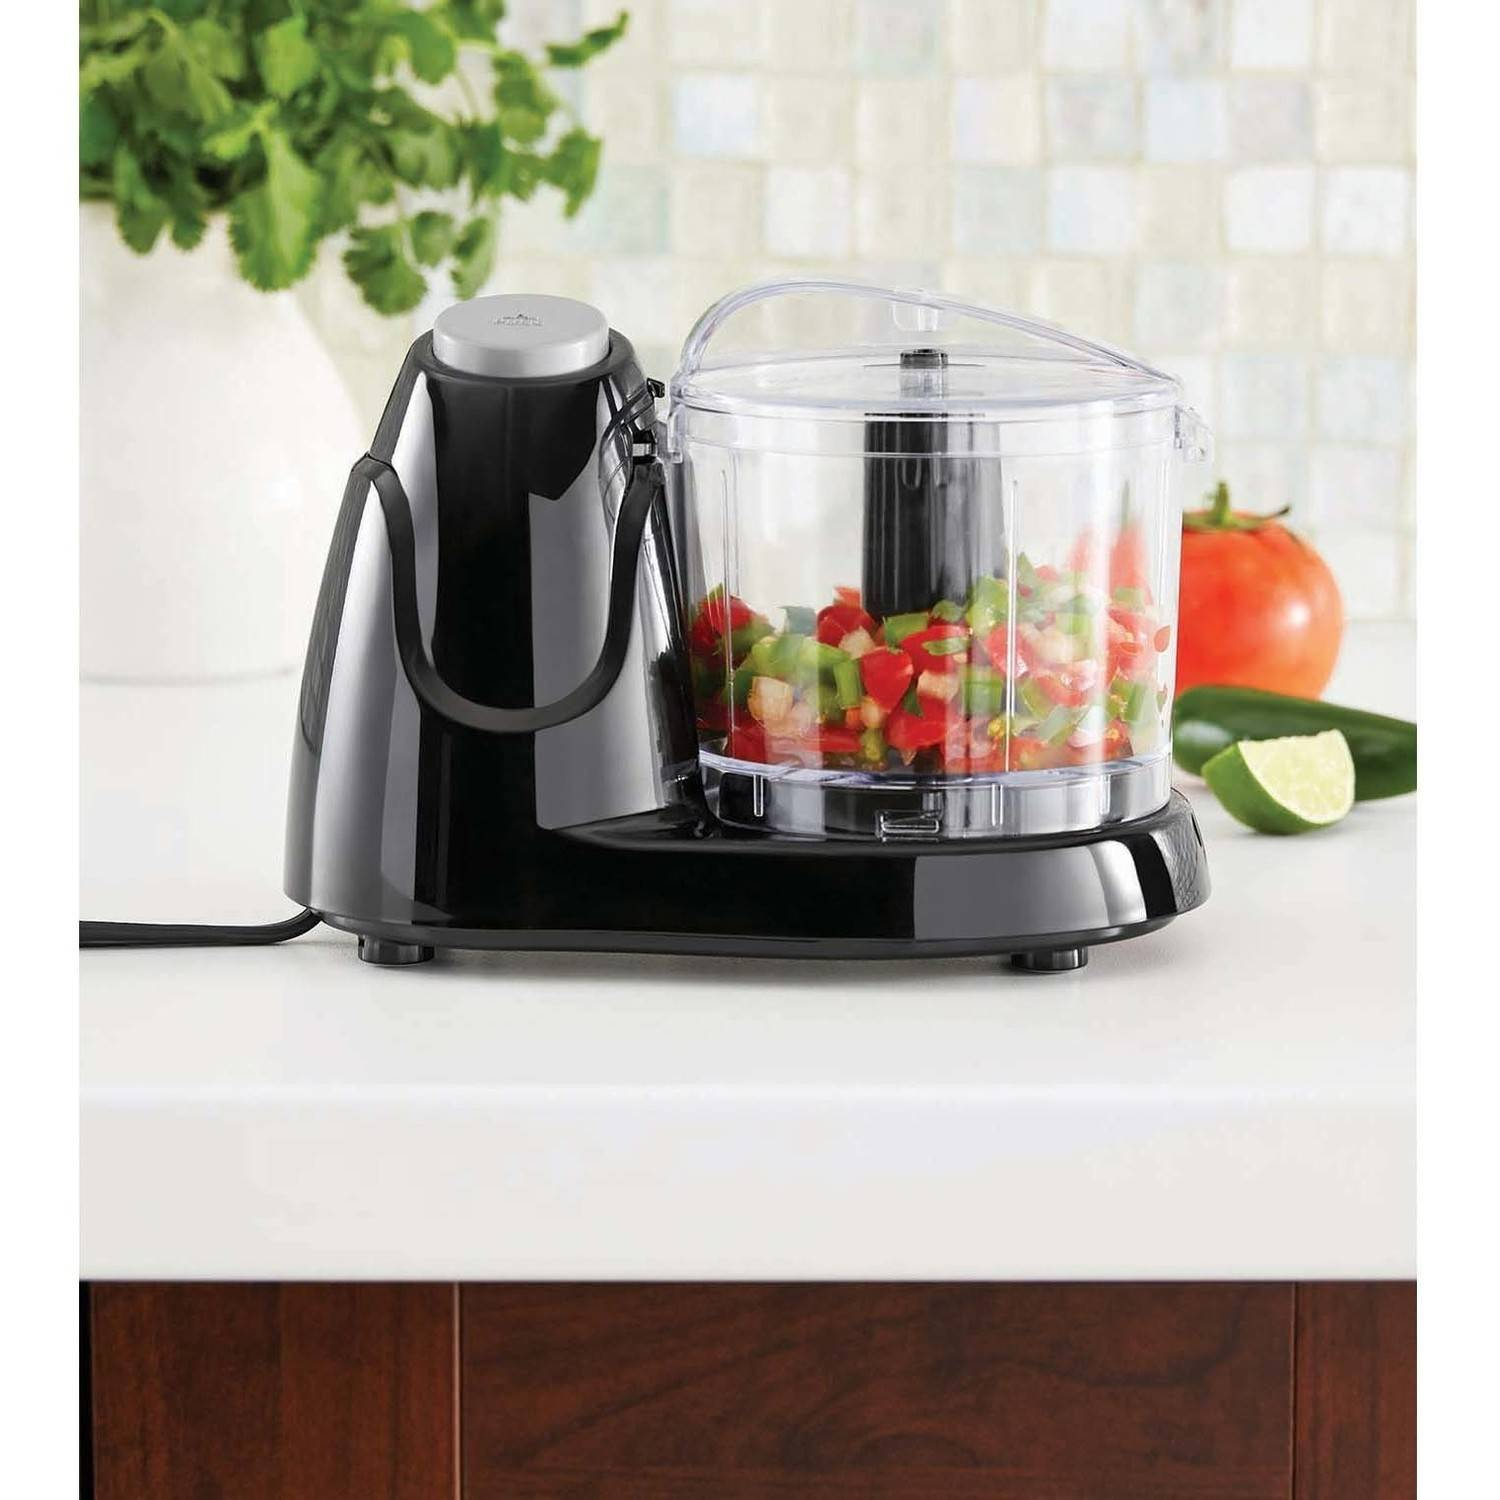 Mainstays 1.5 Cup Food Chopper, Black, FPMEMC3002 BLK